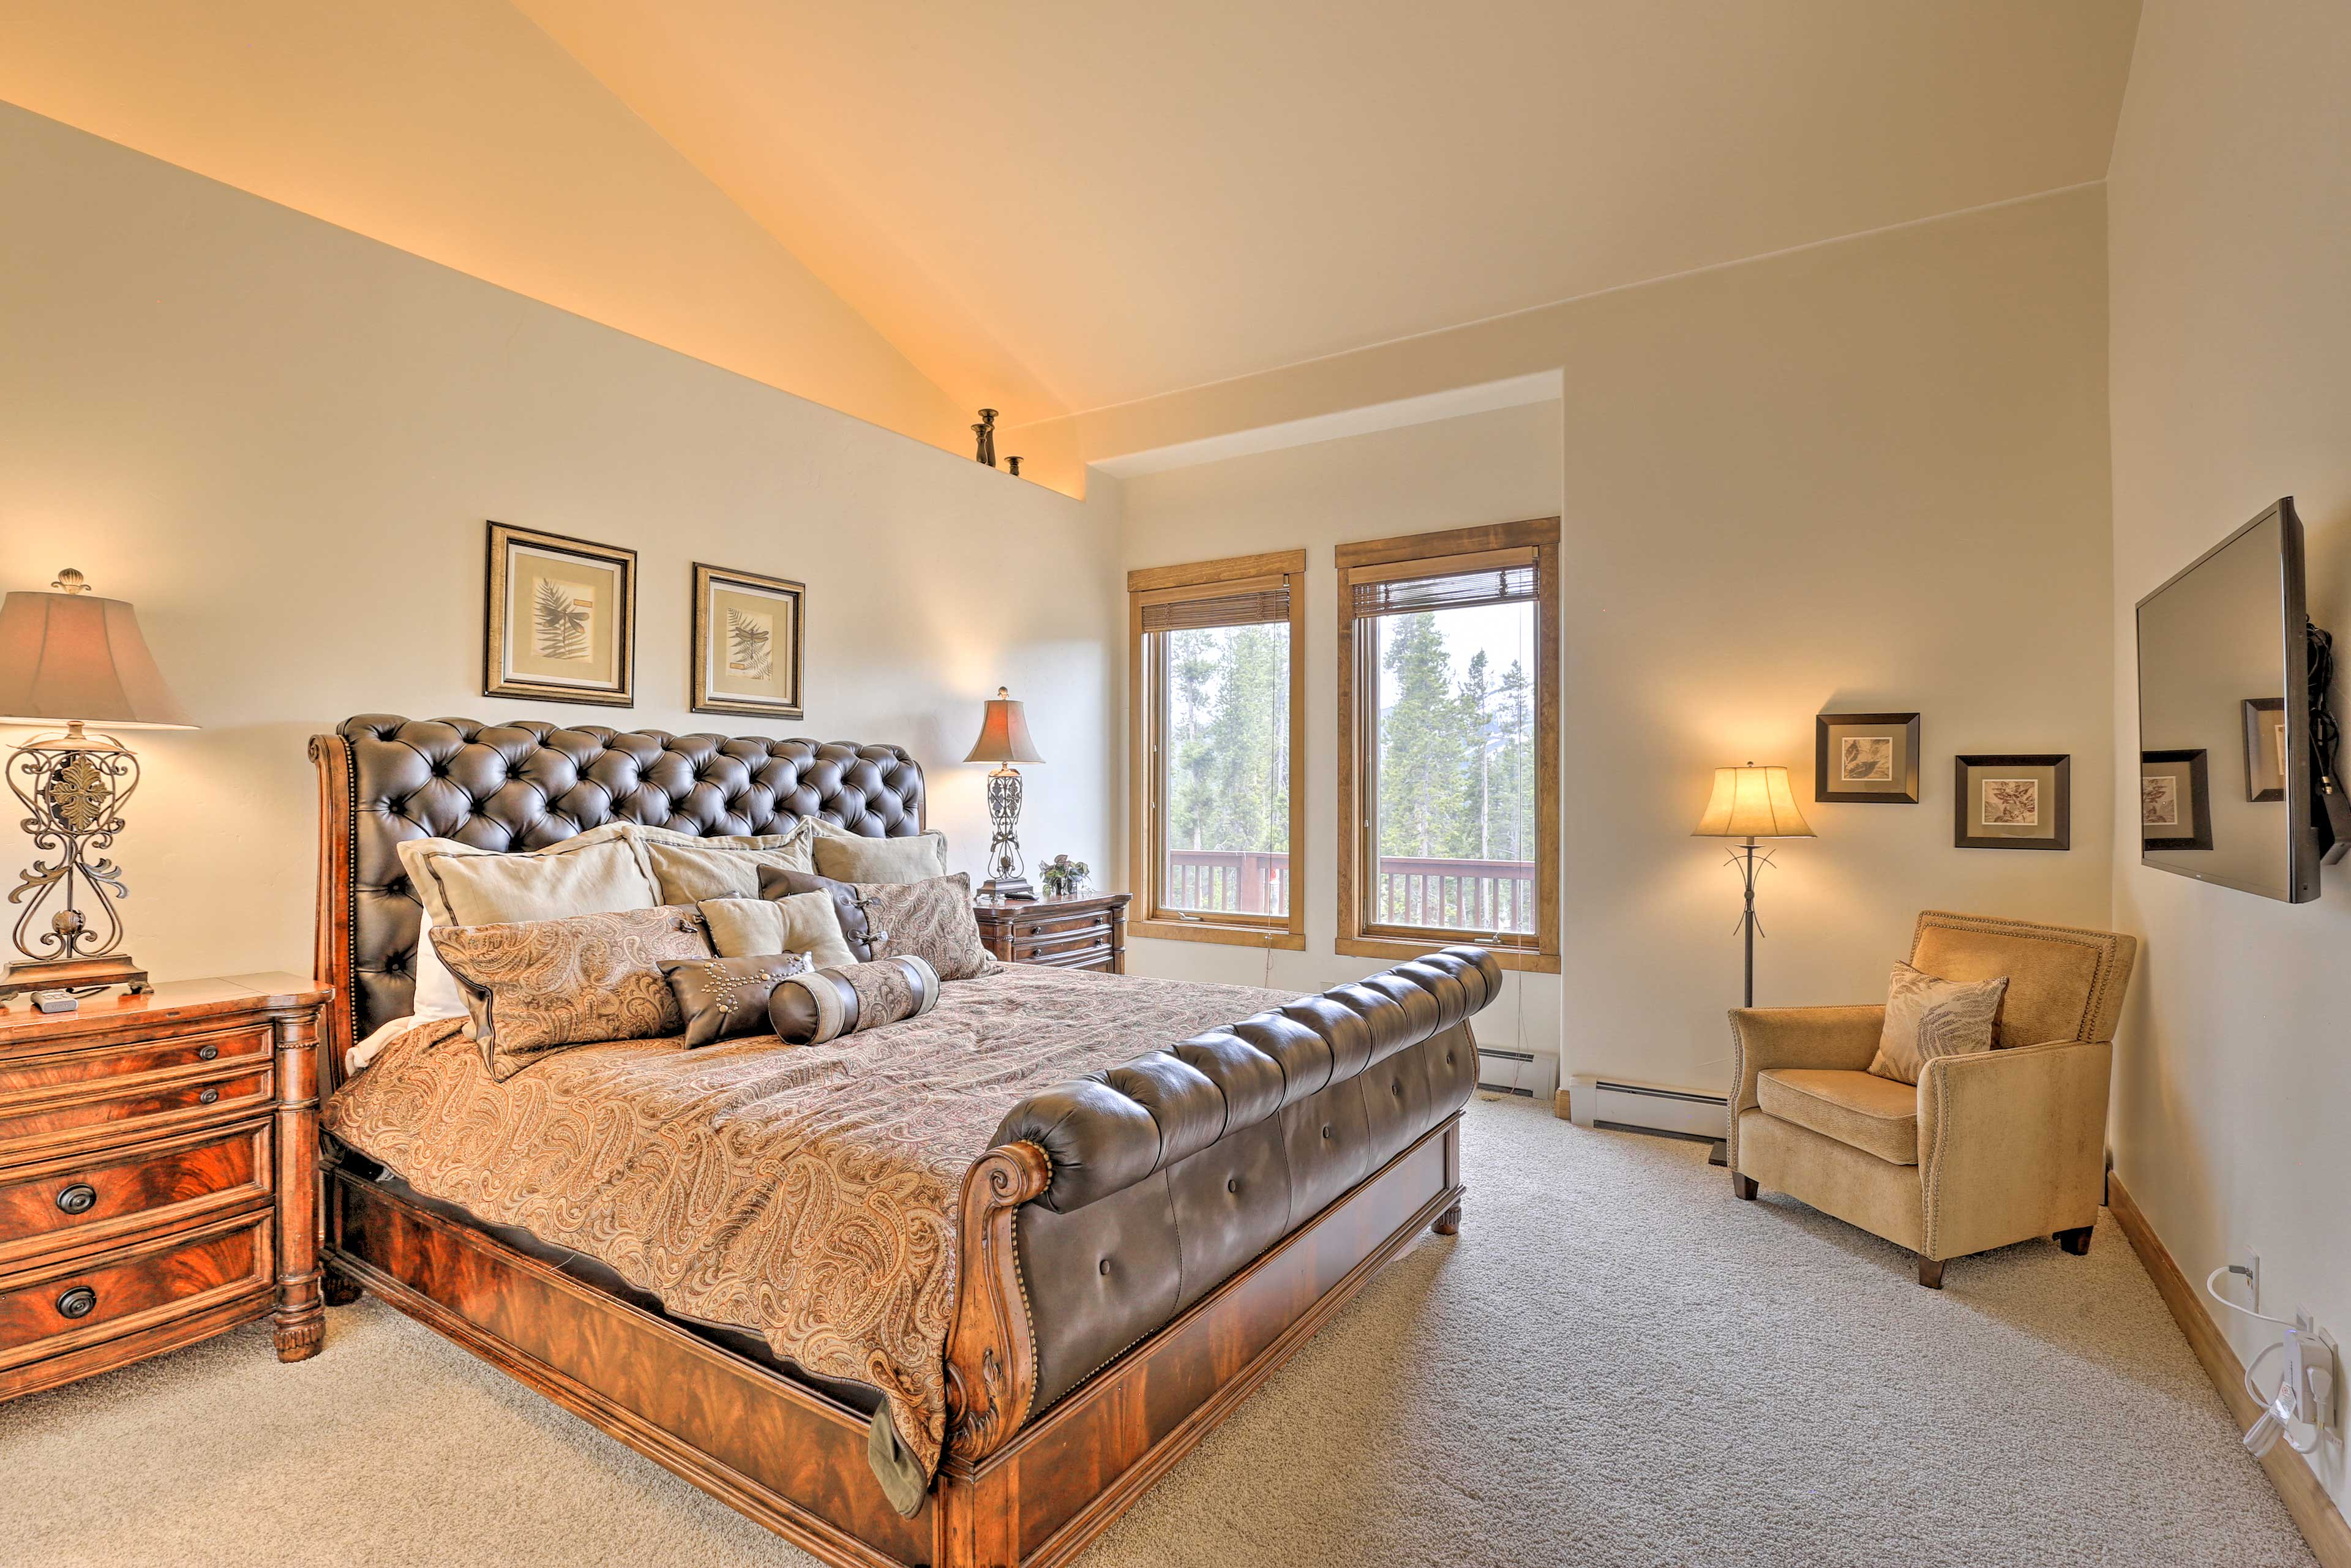 Heads of the household will want to claim this lovely master suite.